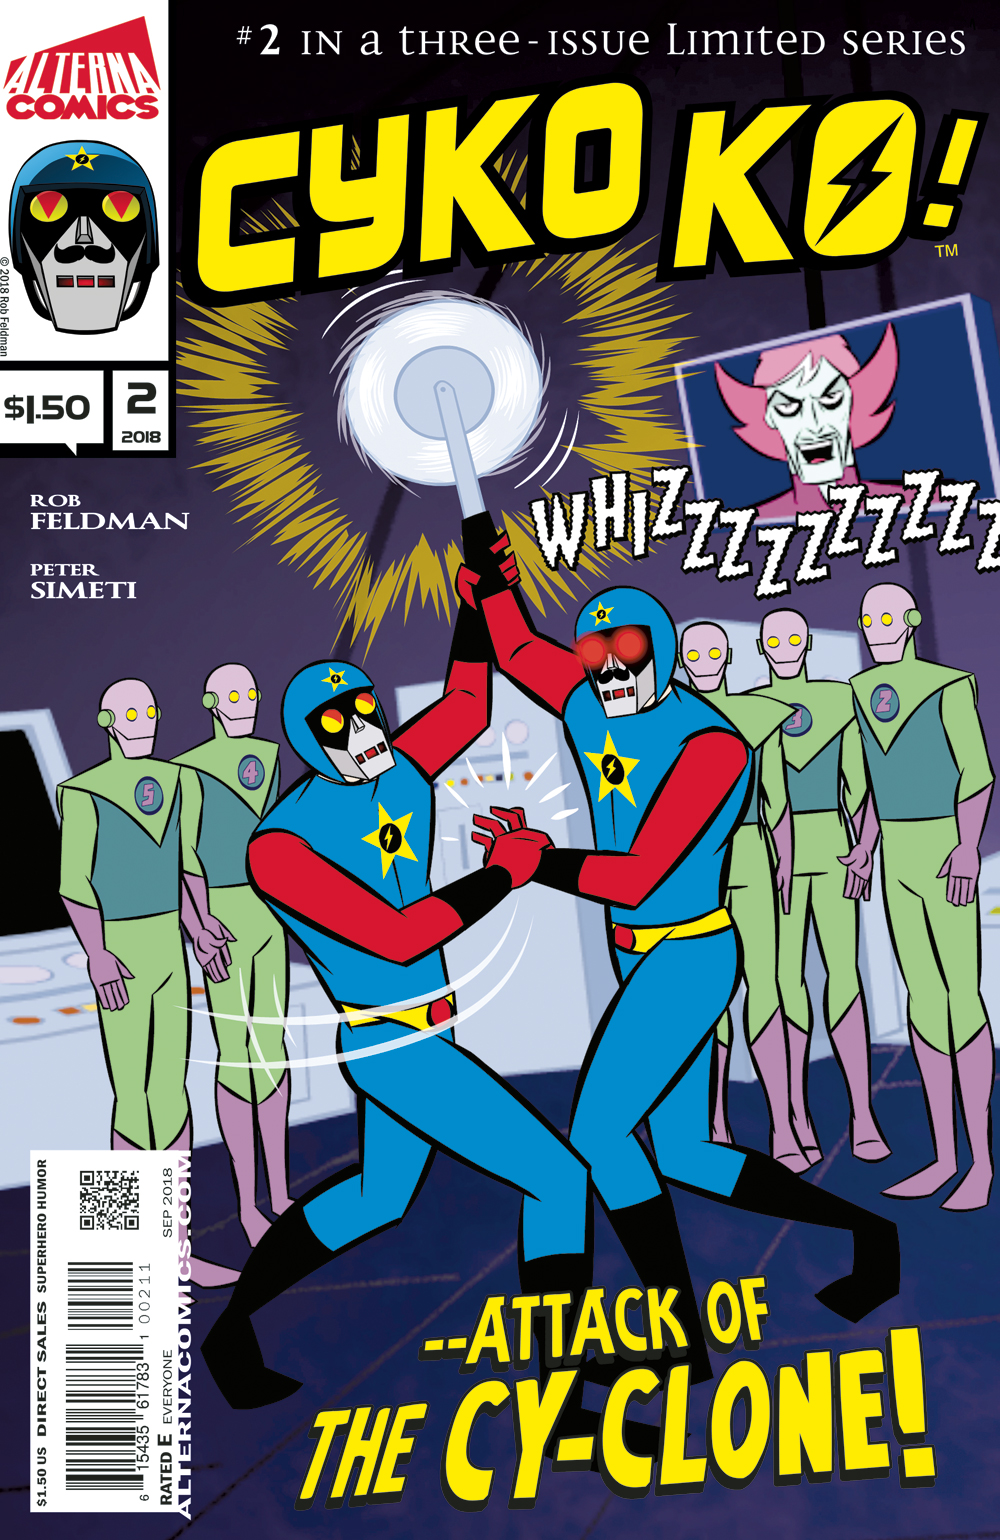 "CYKO KO! #2 of 3 - Another day, another job for SuperEarth's ""greatest"" hero Cyko KO! In this issue, Cyko's evil twin robot is on the loose and this ""Cy-Clone"" will stop at nothing to accomplish his impossible mission and take down one of Cyko's childhood heroes!(W/A) Rob Feldman(L) Peter Simeti$1.50, 32 pgs, Superhero/Humor, Full Color, All Ages"